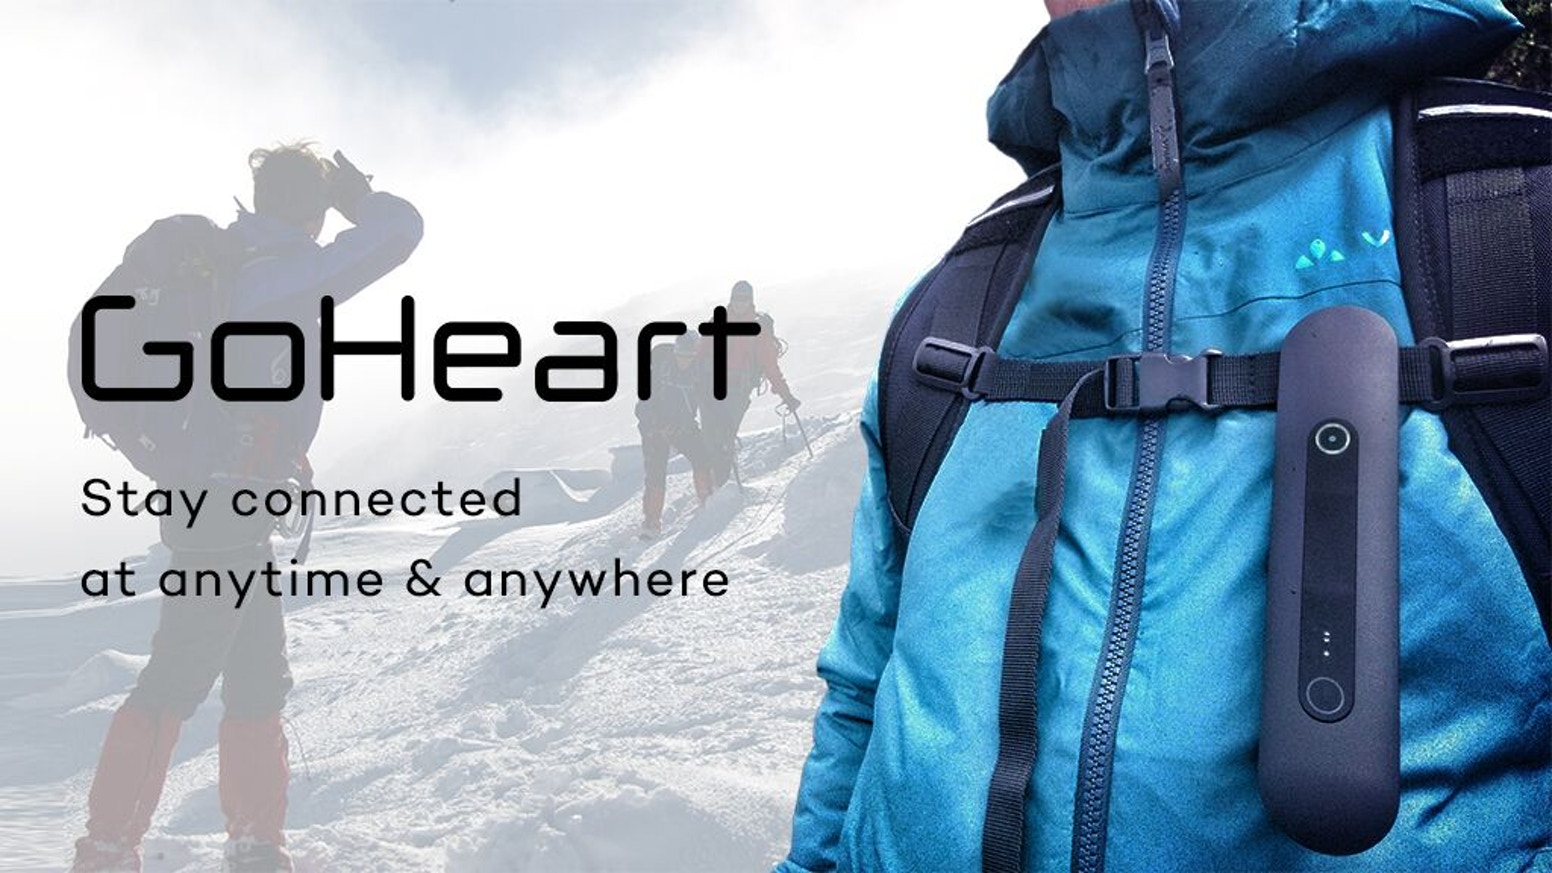 GoHeart Mesh is the ultimate outdoor networking device with user-friendly interface.